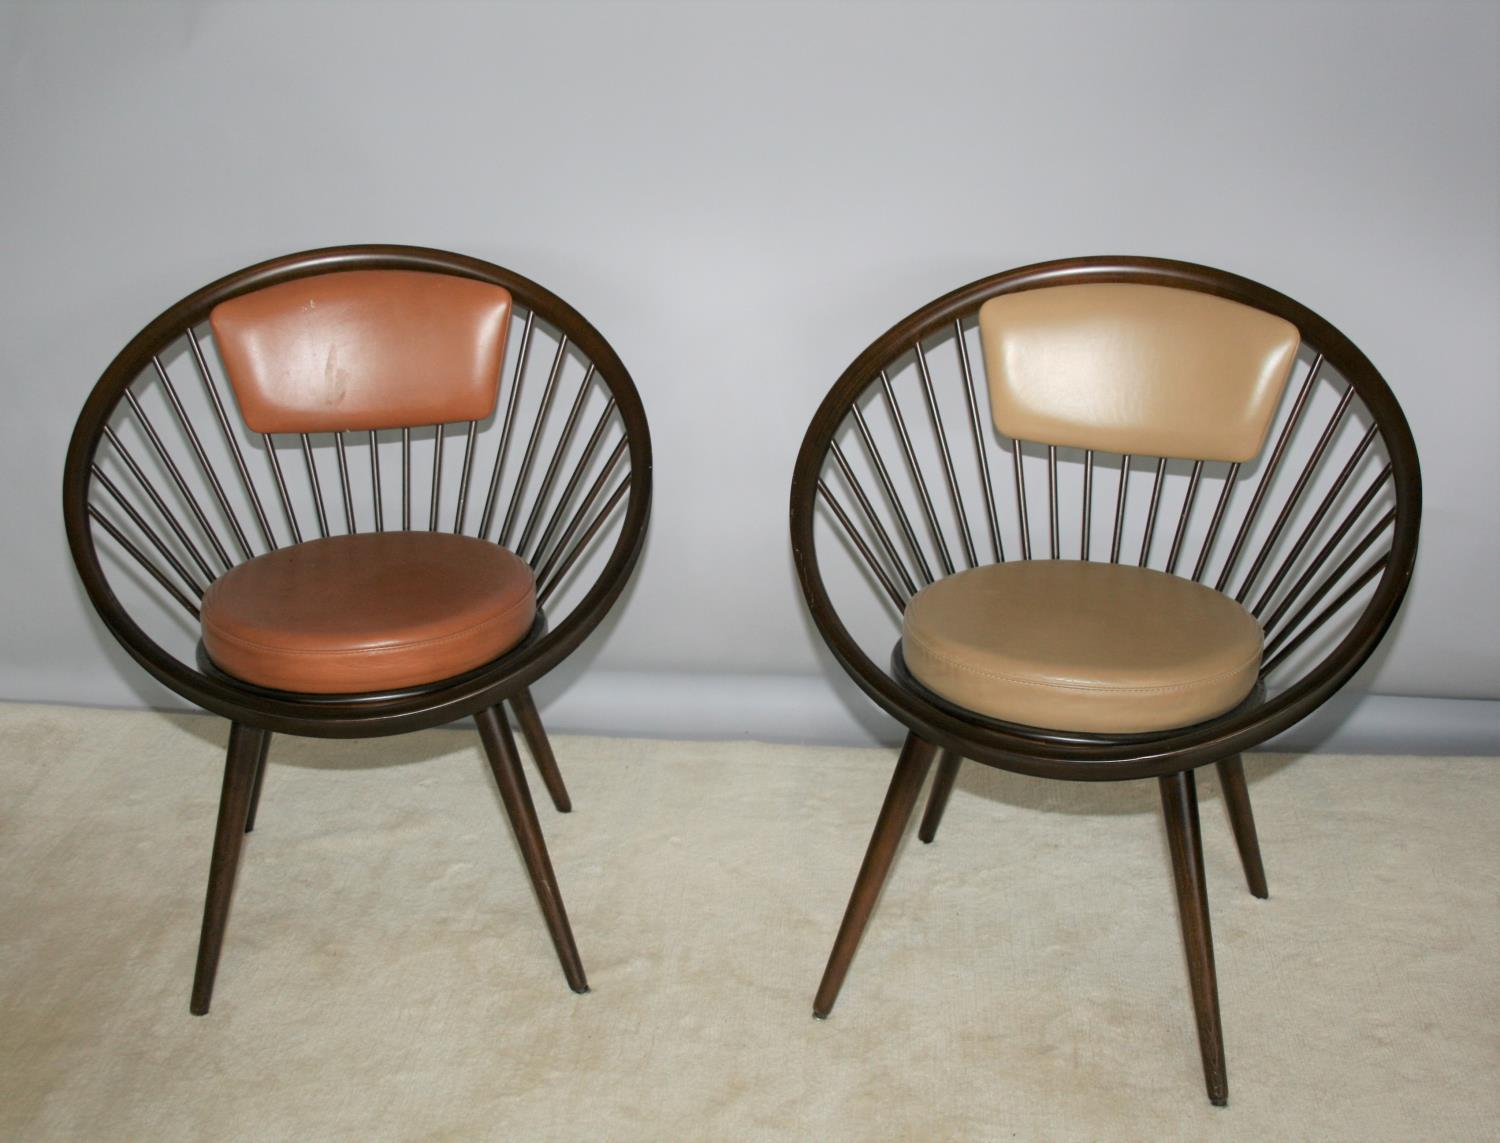 Near pair of stylish circular framed chairs with leather upholstery 28 W x 31 H x 22 D